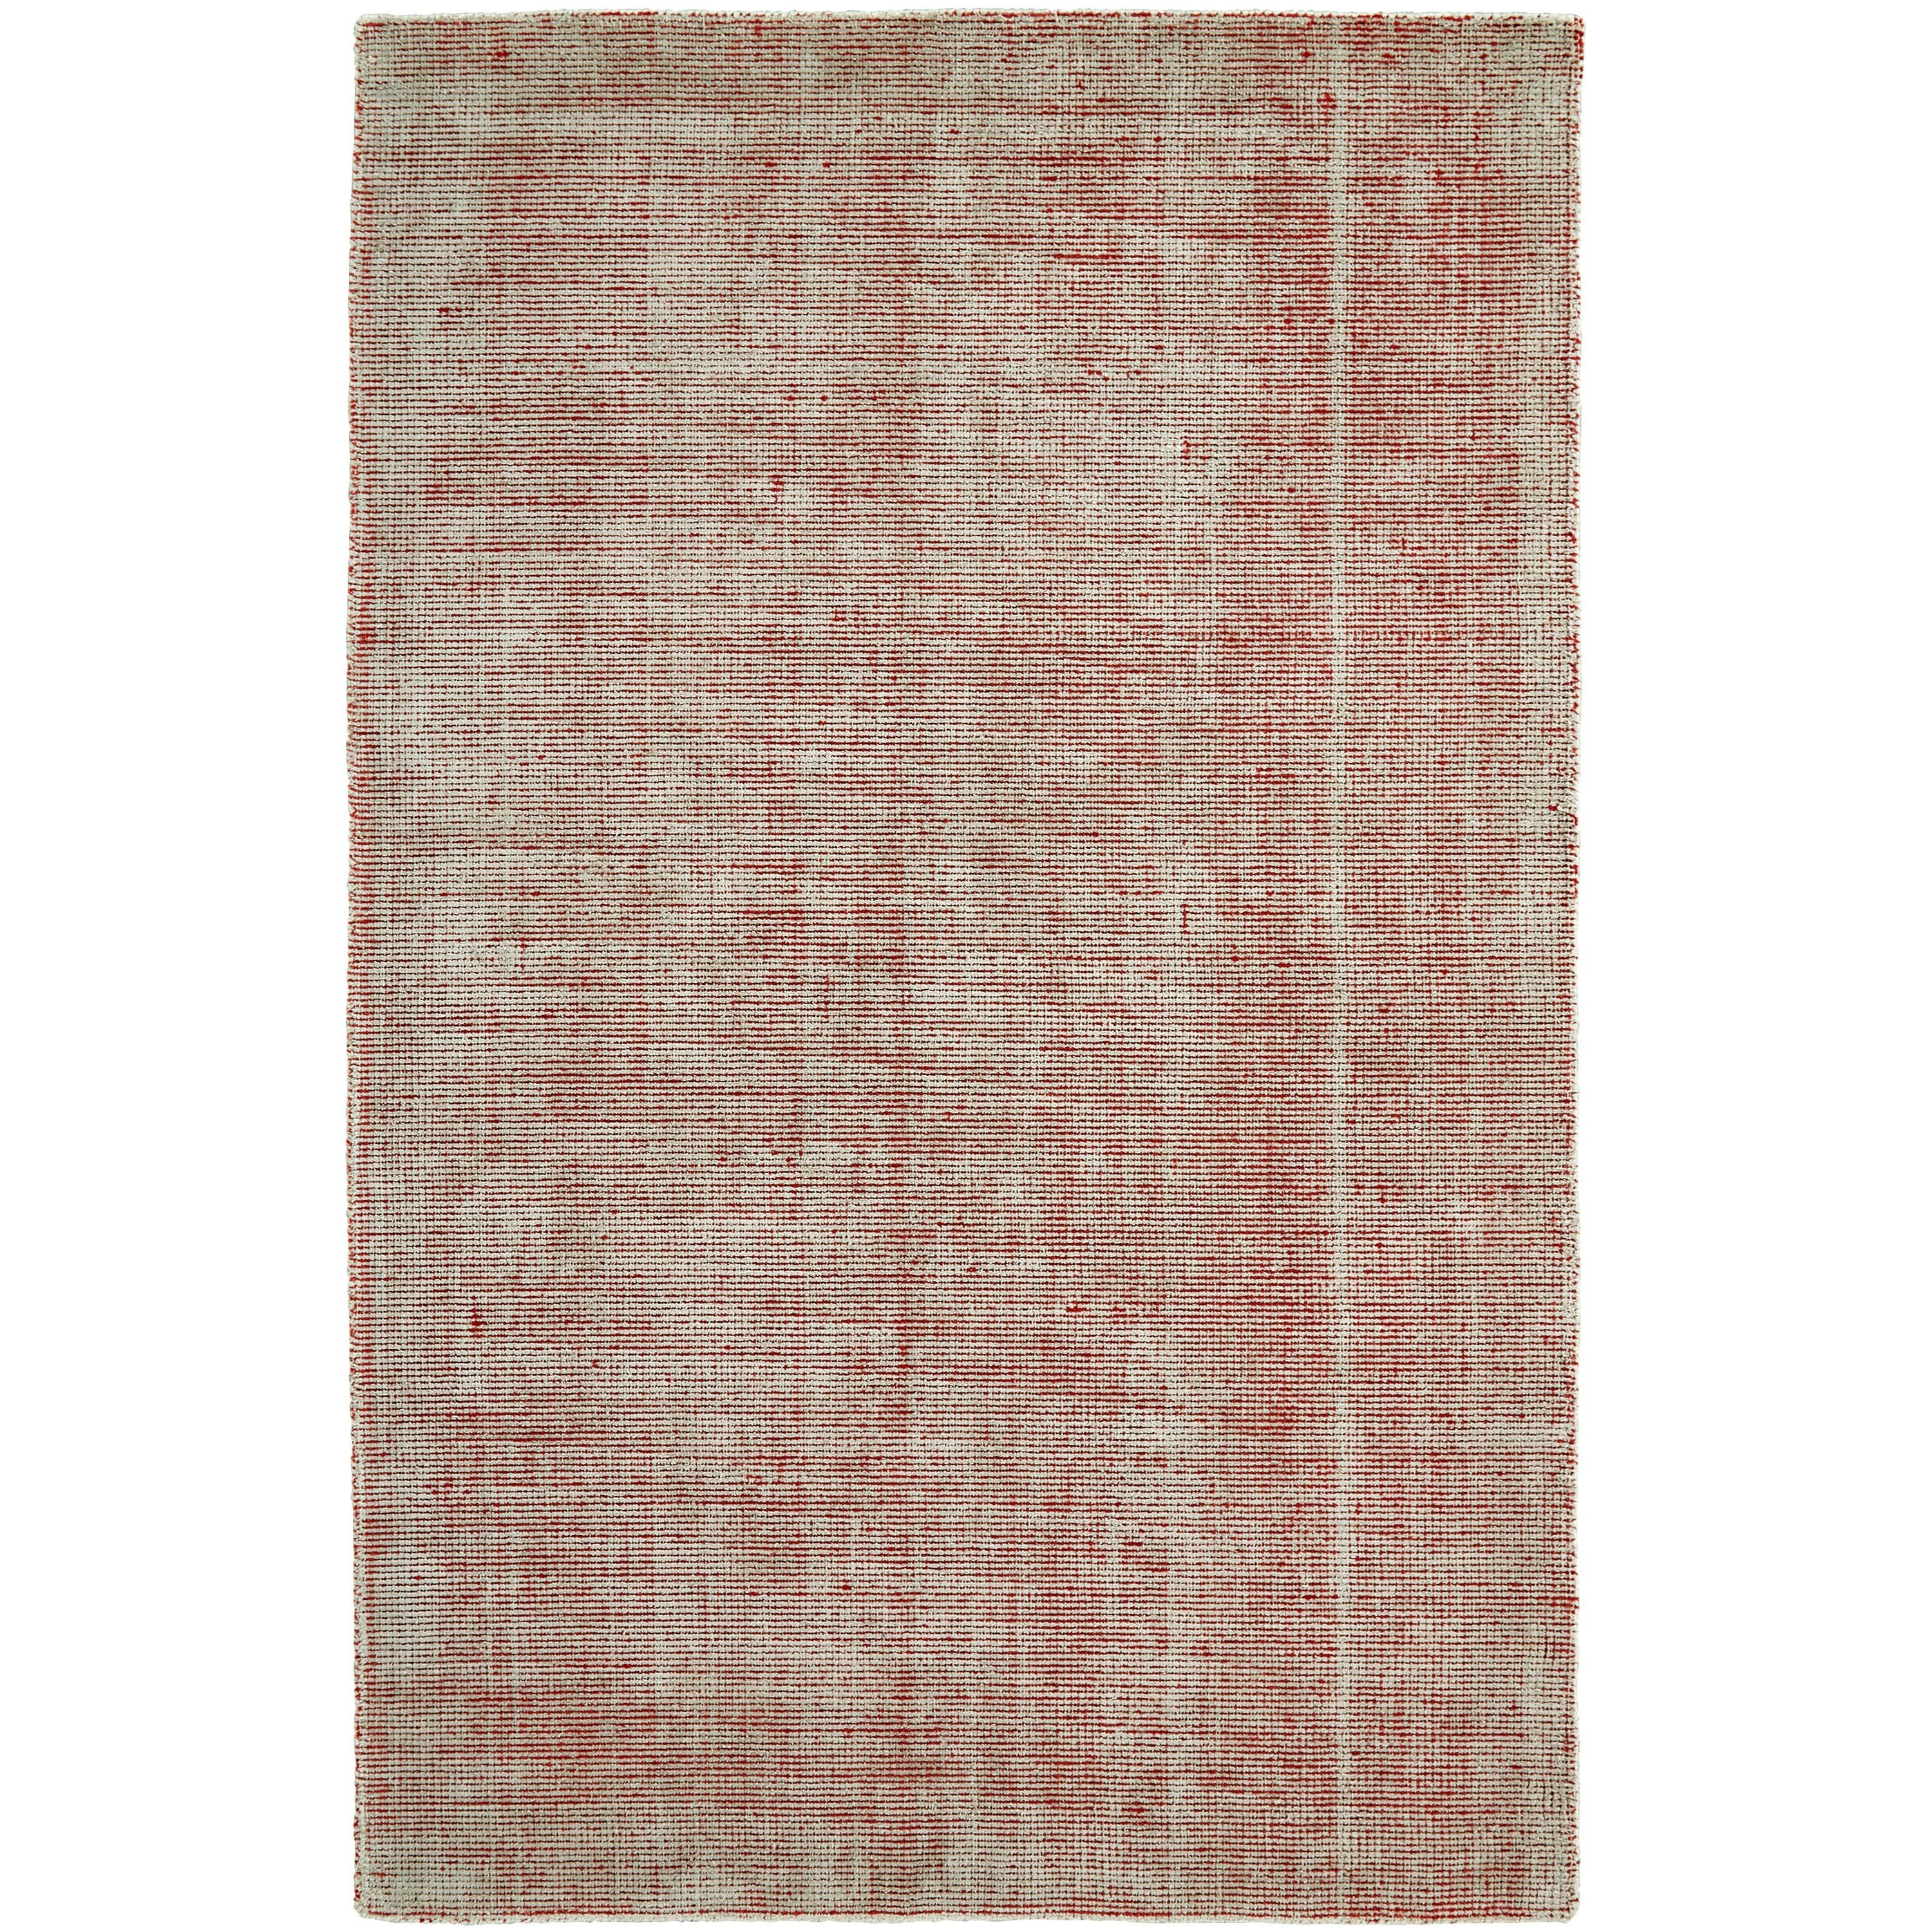 Landon Pomegranate 8' X 11' Area Rug by Feizy Rugs at Sprintz Furniture